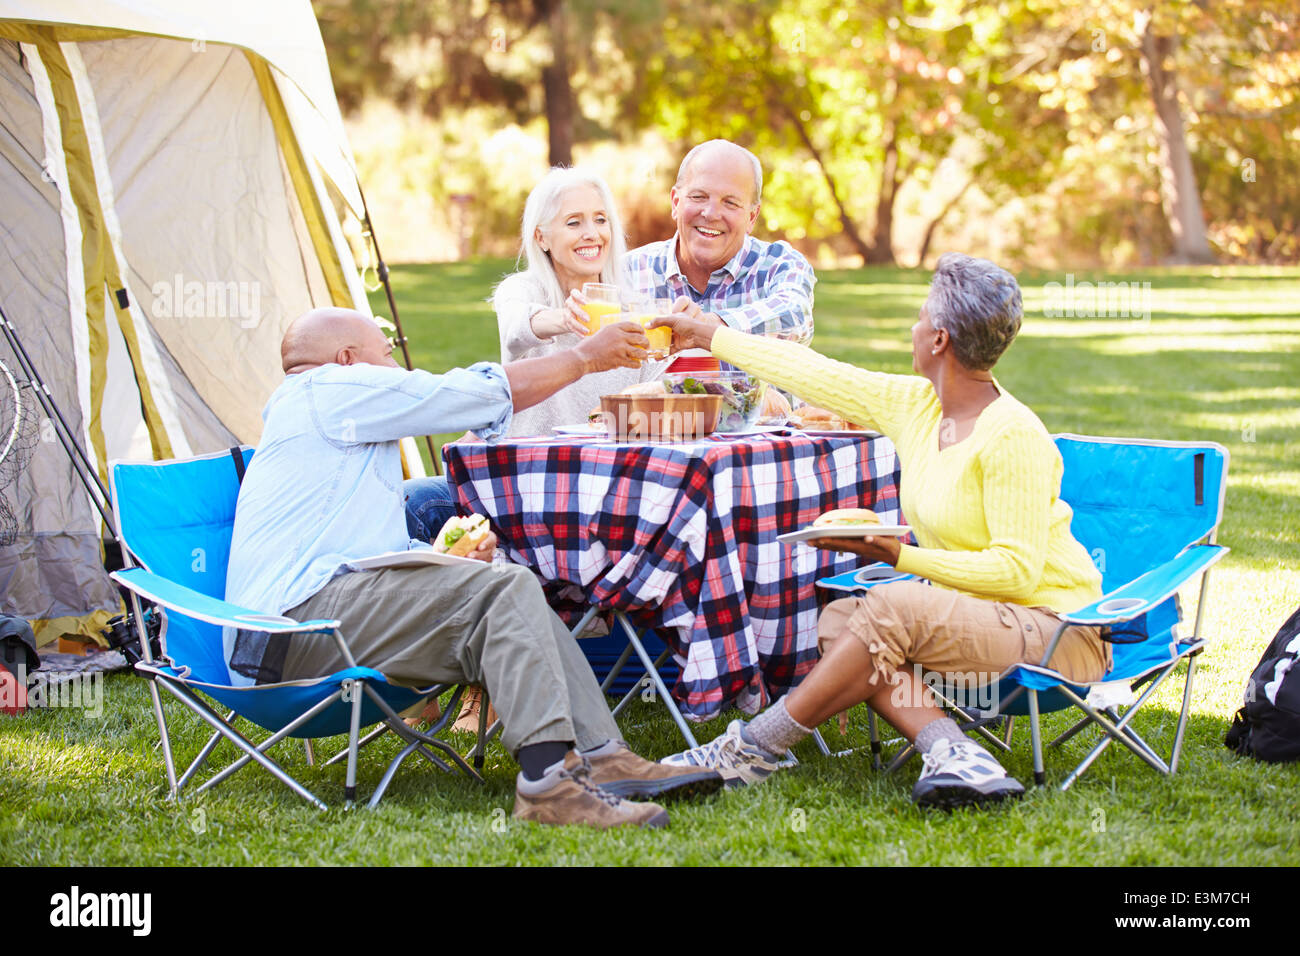 Two Senior Couples Enjoying Camping Holiday In Countryside Stock Photo